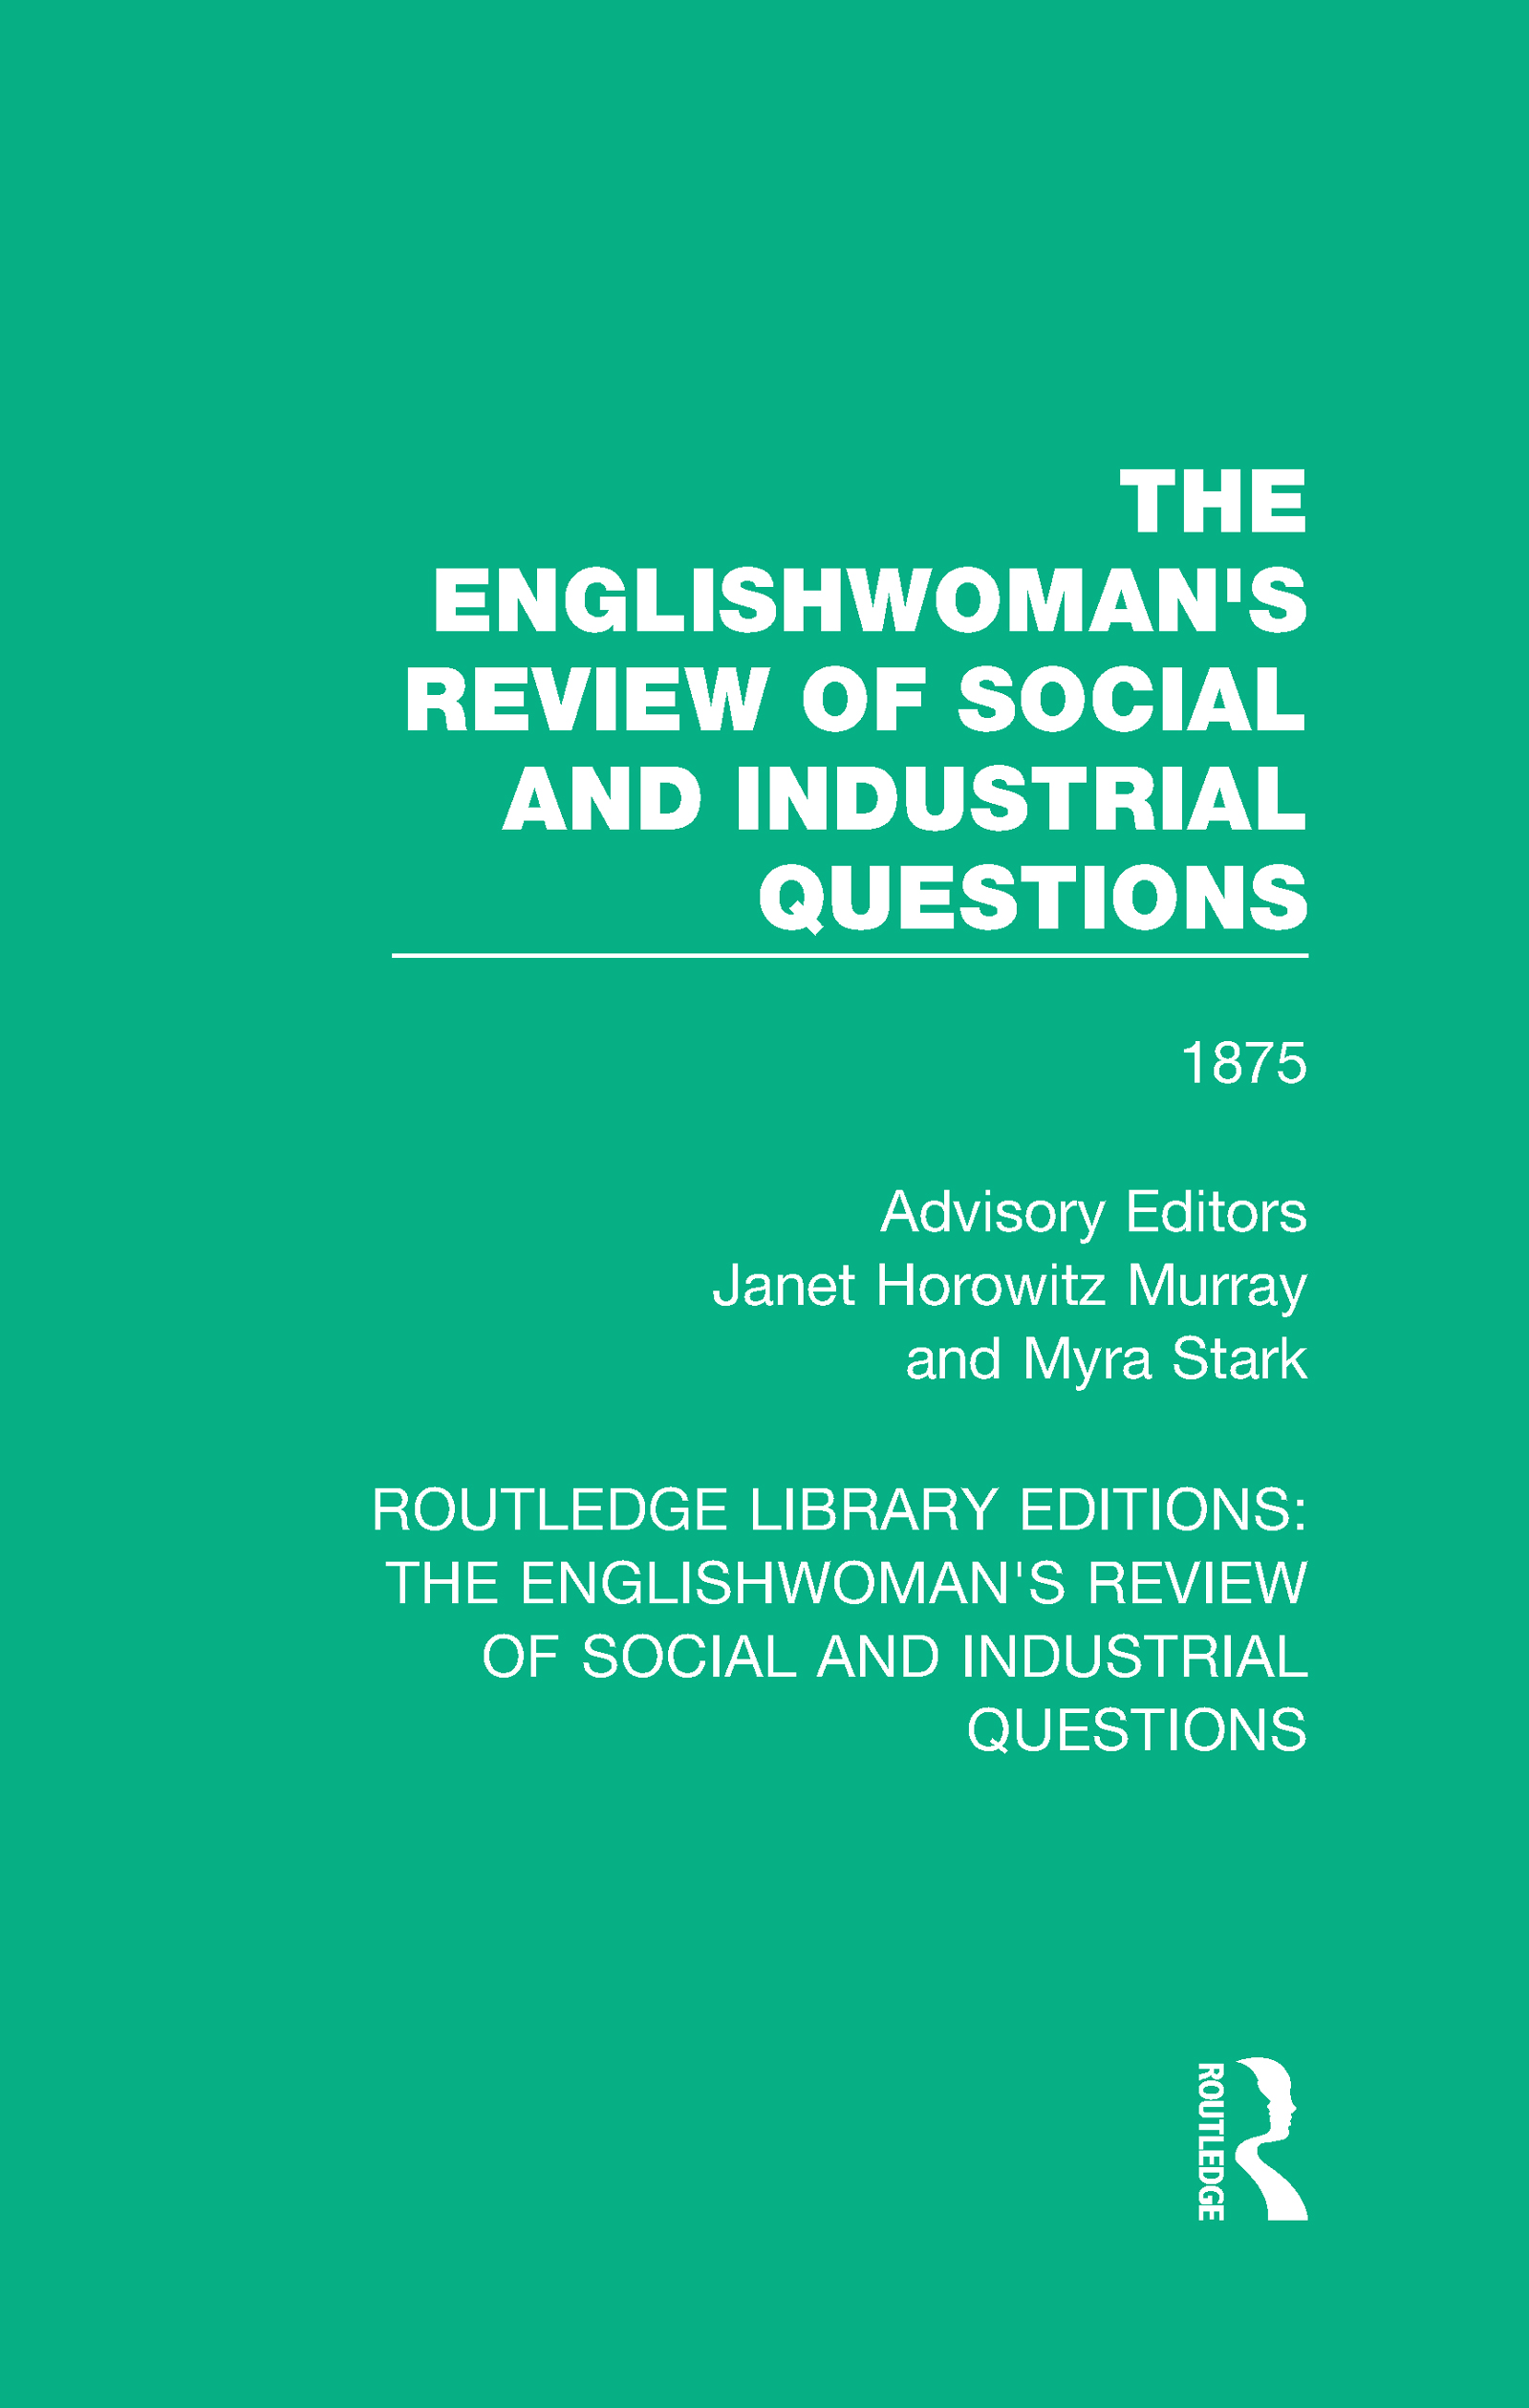 The Englishwoman's Review of Social and Industrial Questions: 1875 book cover